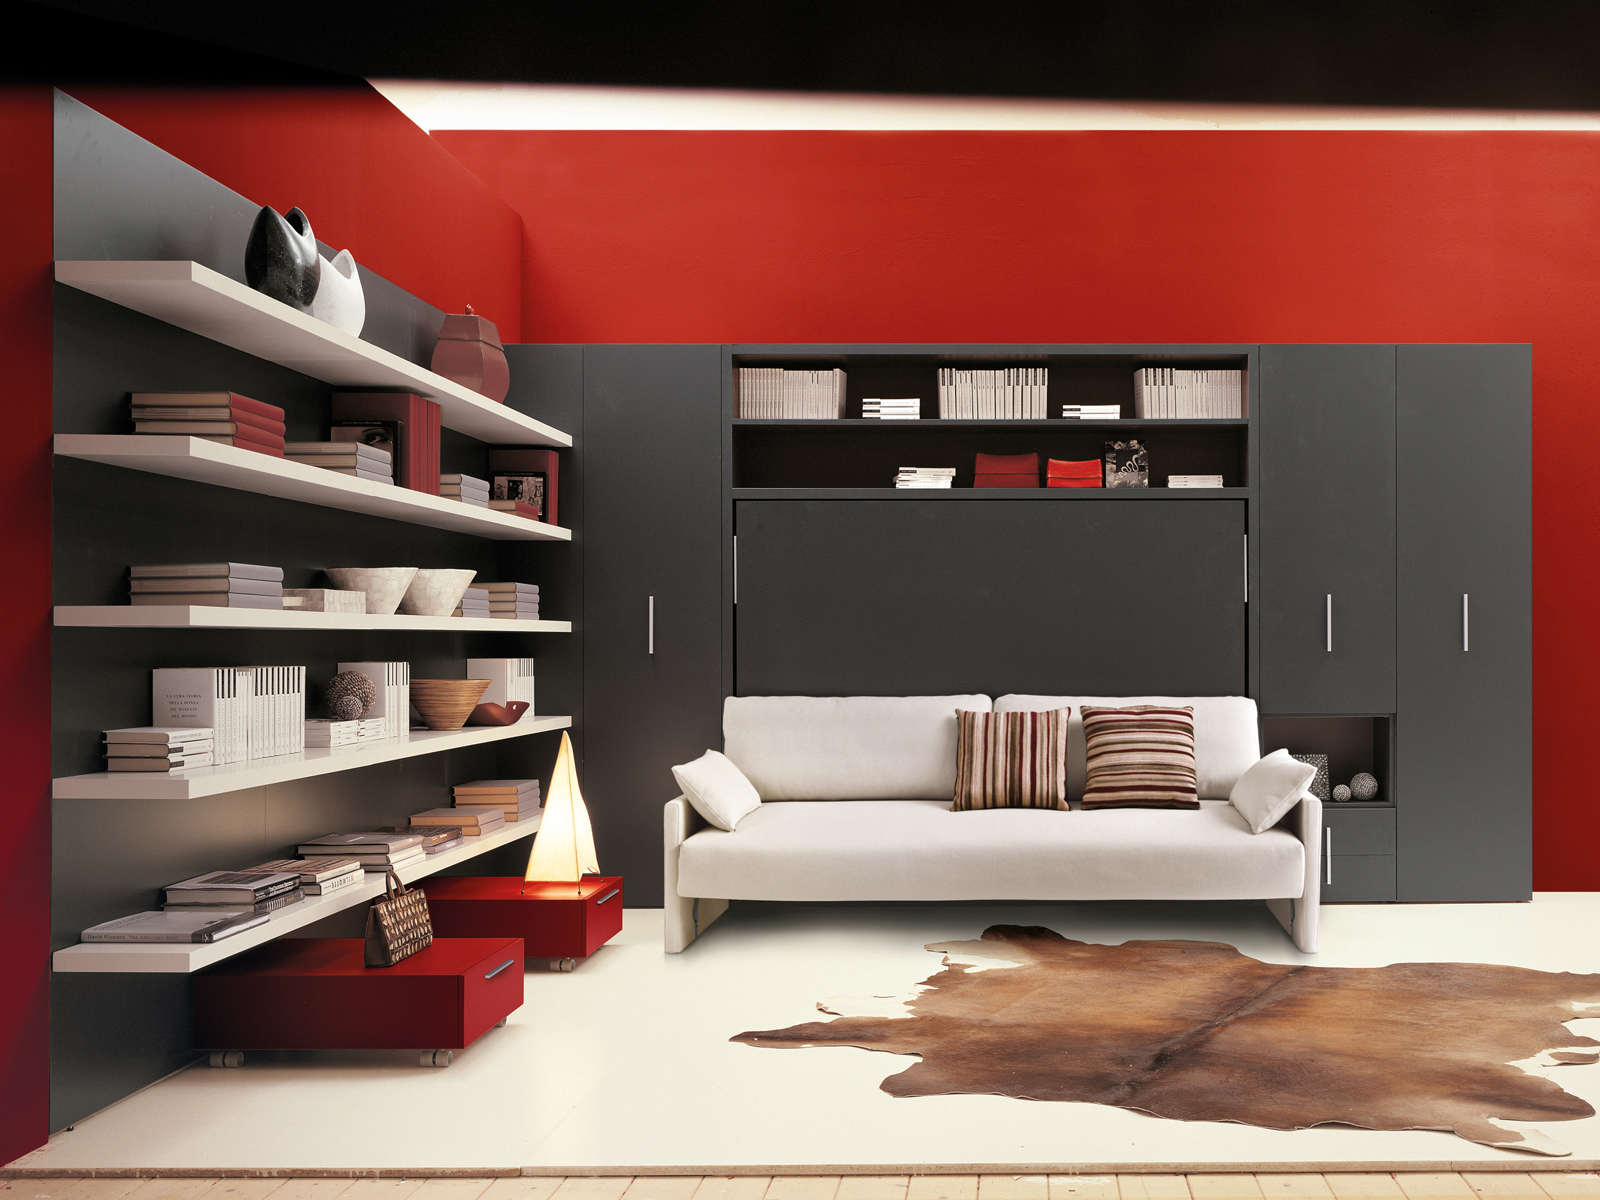 Mueble modular de pared con cama abatible CIRCE SOFA by CLEI diseu00f1o R ...